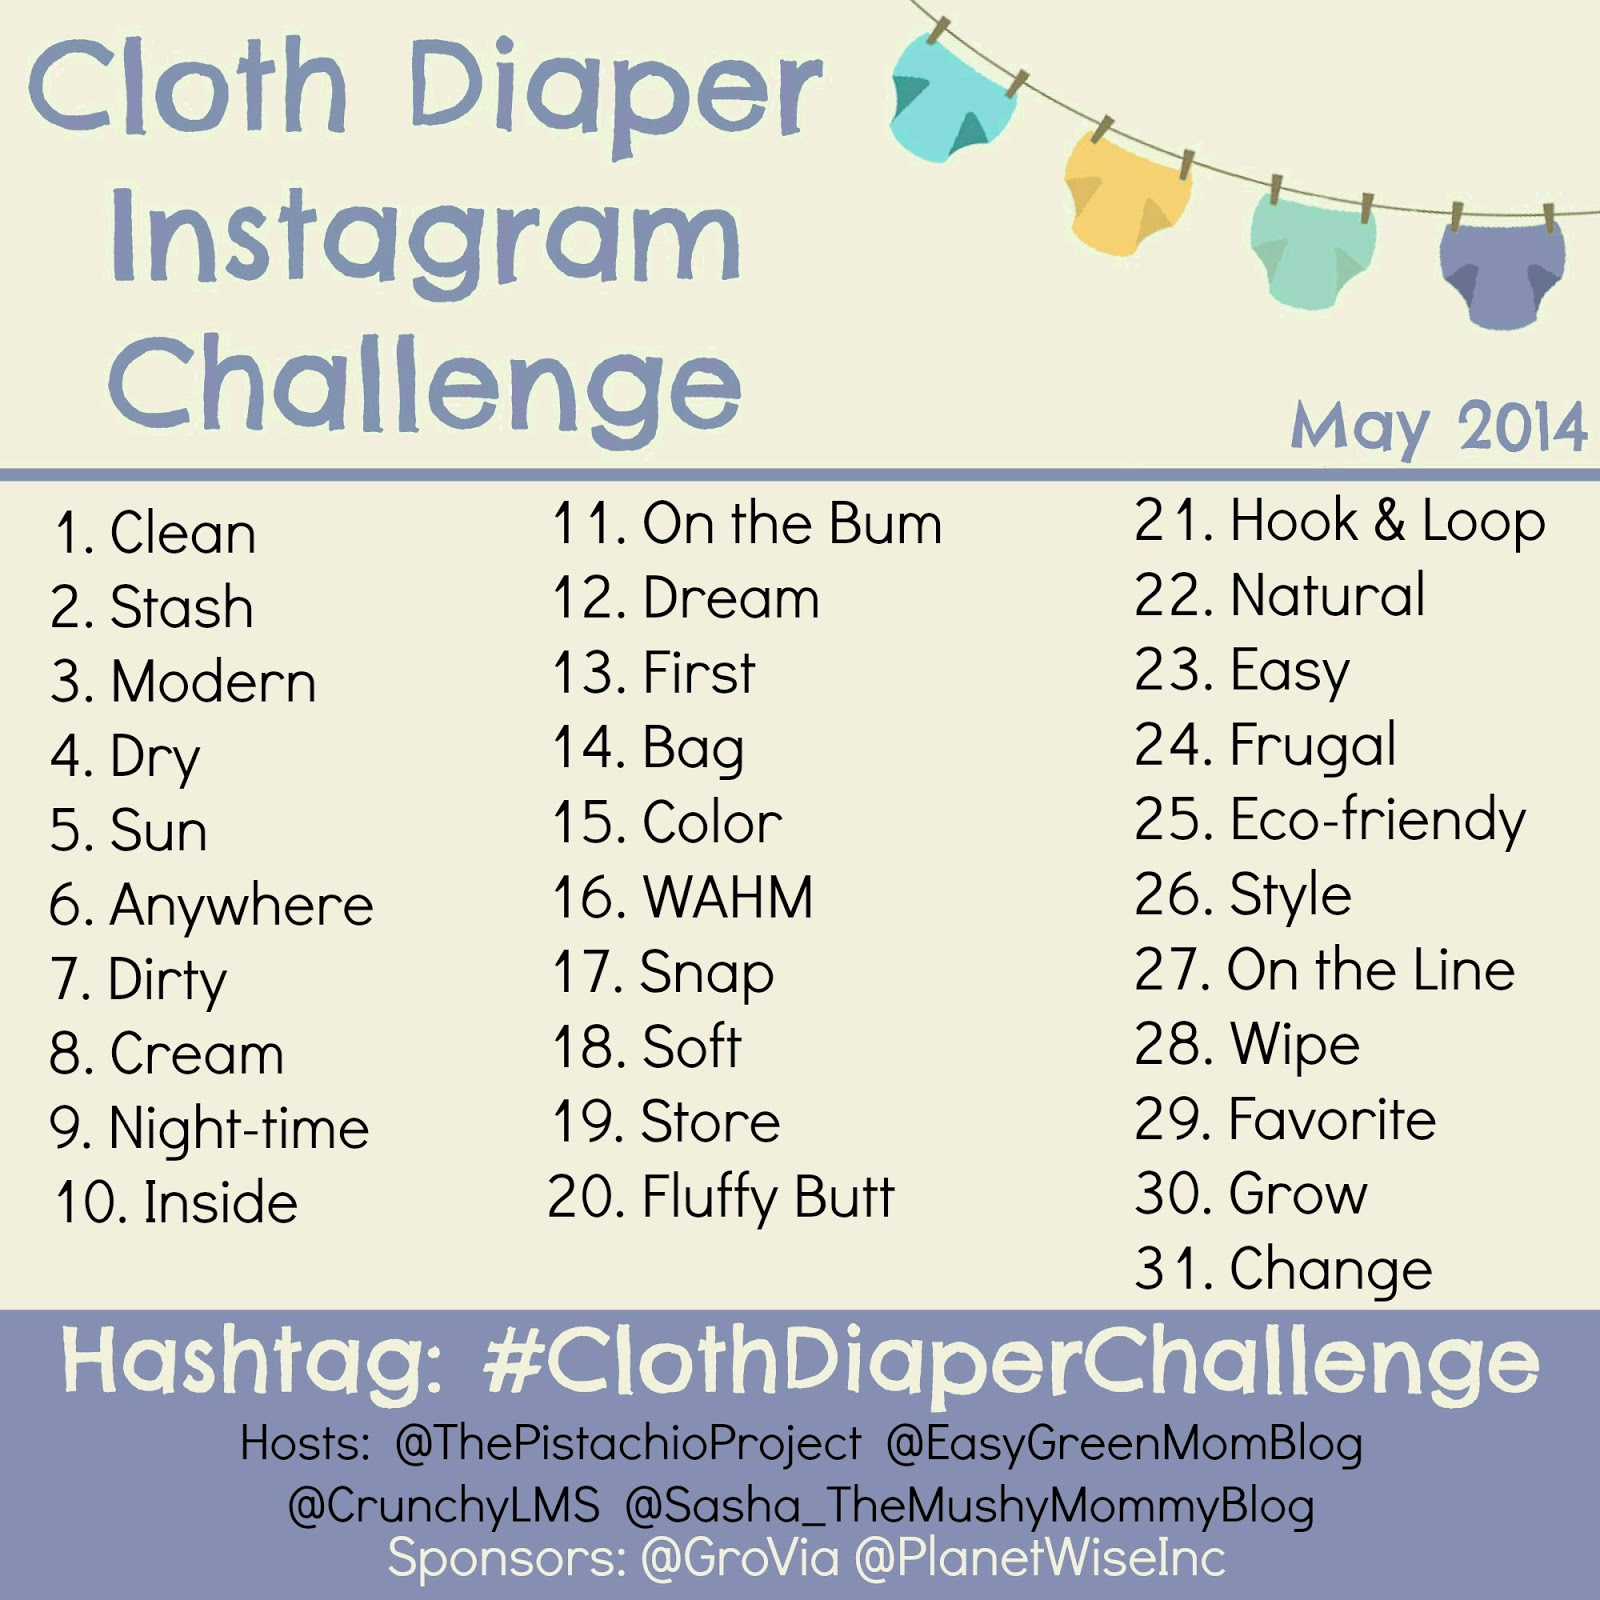 Cloth Diaper Instagram Challenge Giveaways